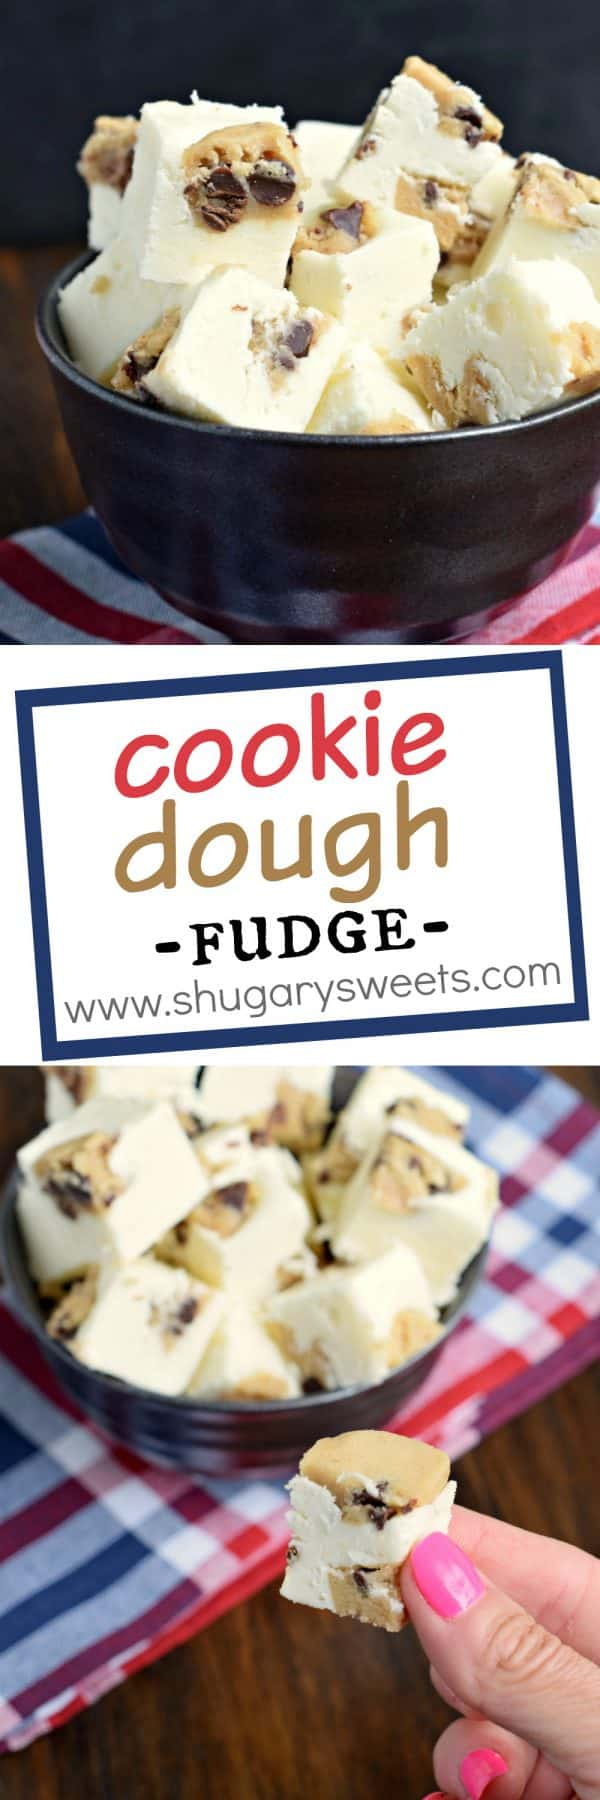 Easy and delicious, White Chocolate Cookie Dough Fudge is the dessert you've been waiting for! Packed with chunks of cookie dough, what's not to love?